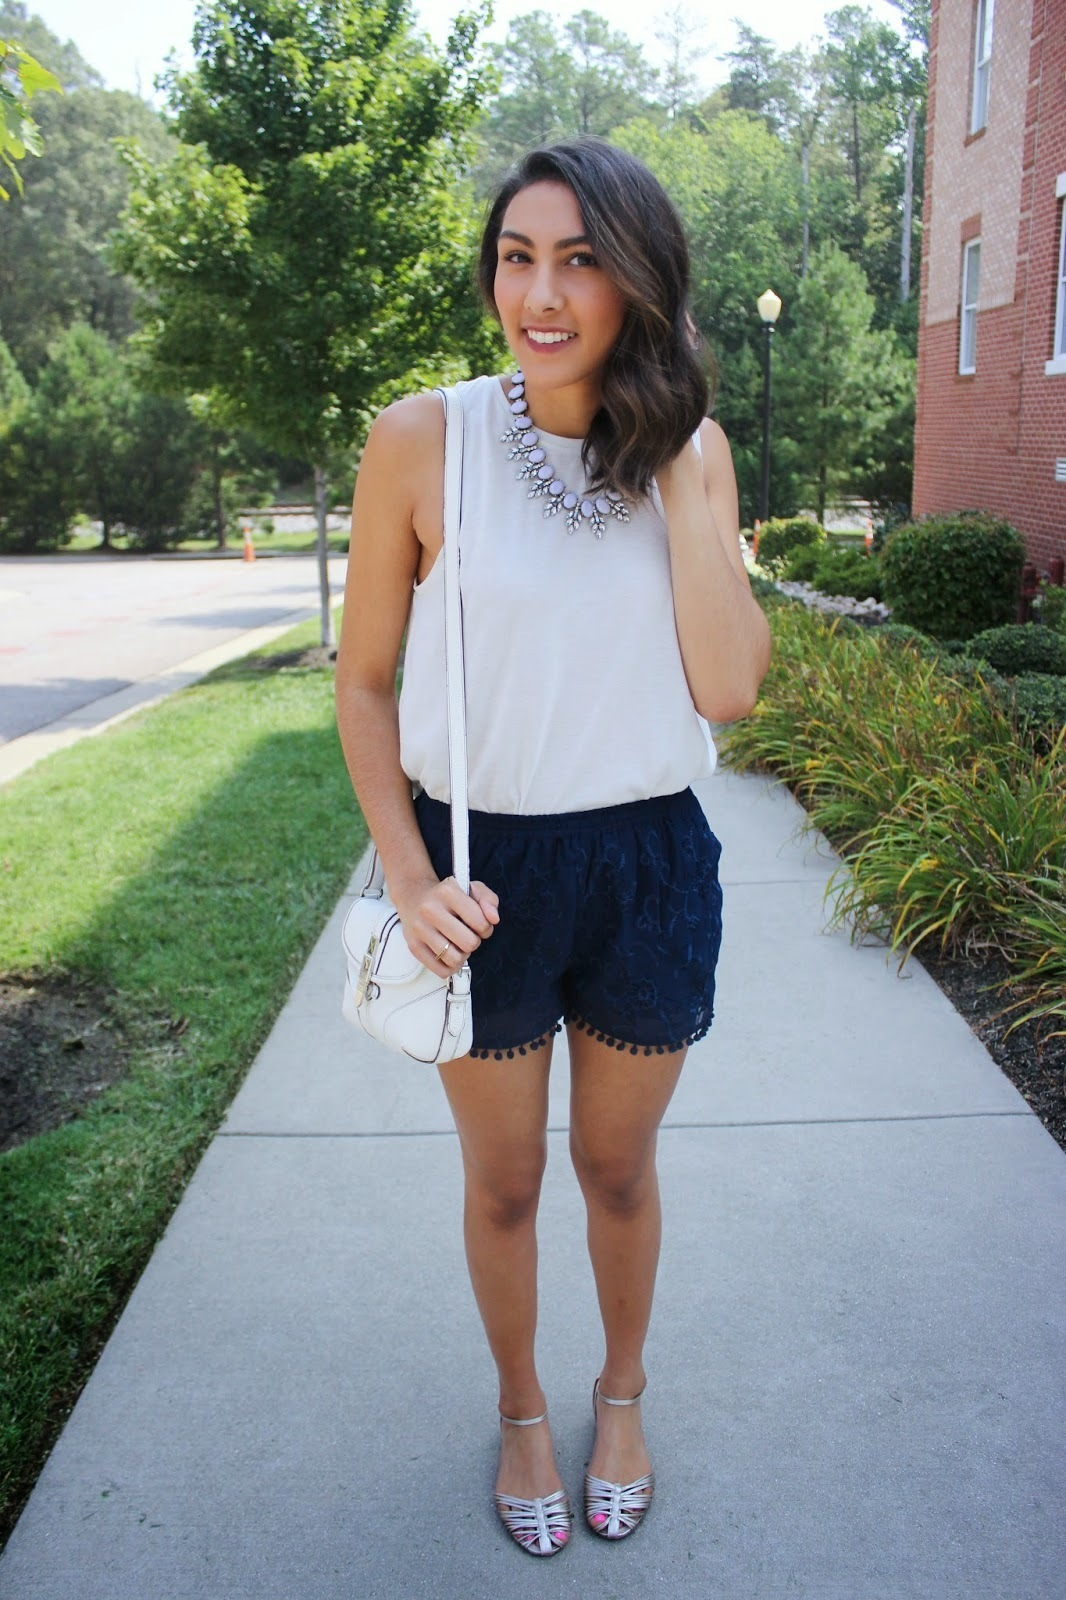 Girls What to wear with navy lace shorts? Just a white tank top? - GirlsAskGuys